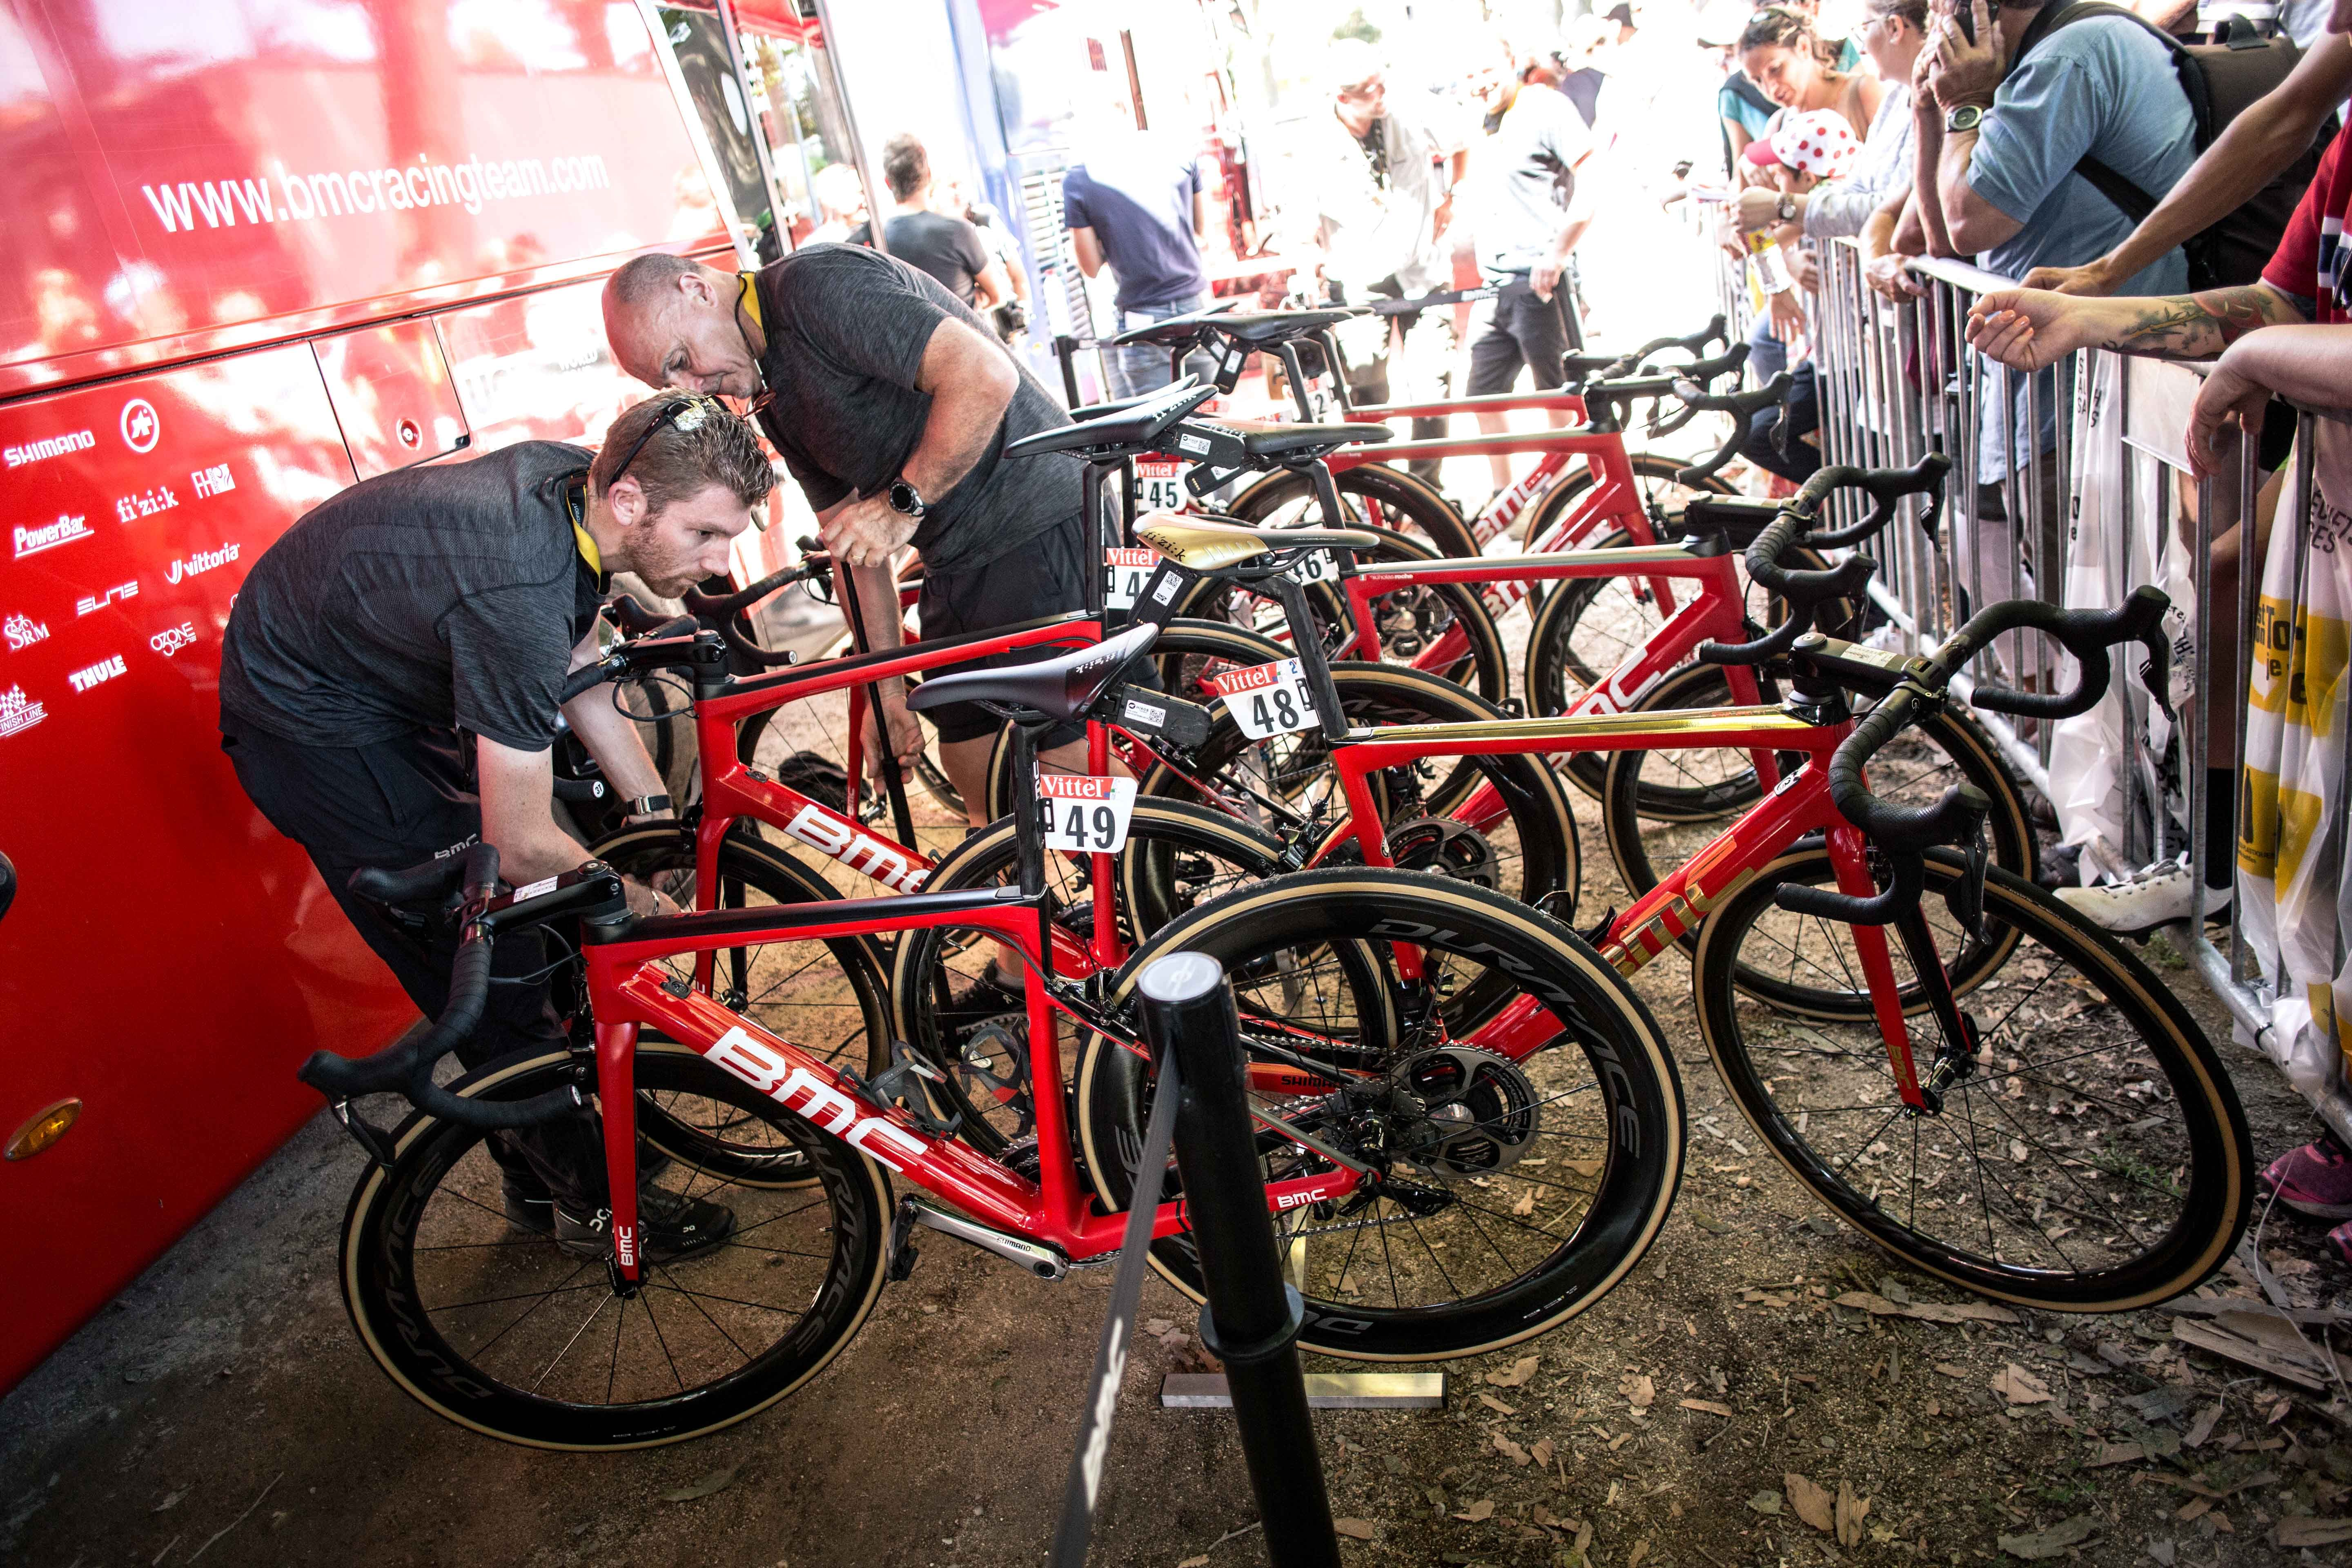 Inside The Tour De France Village Bmc Racing Team Mechanics Touch Up Riders Bikes For Today S Stage Tour De France Cycling Trips Thomson Bike